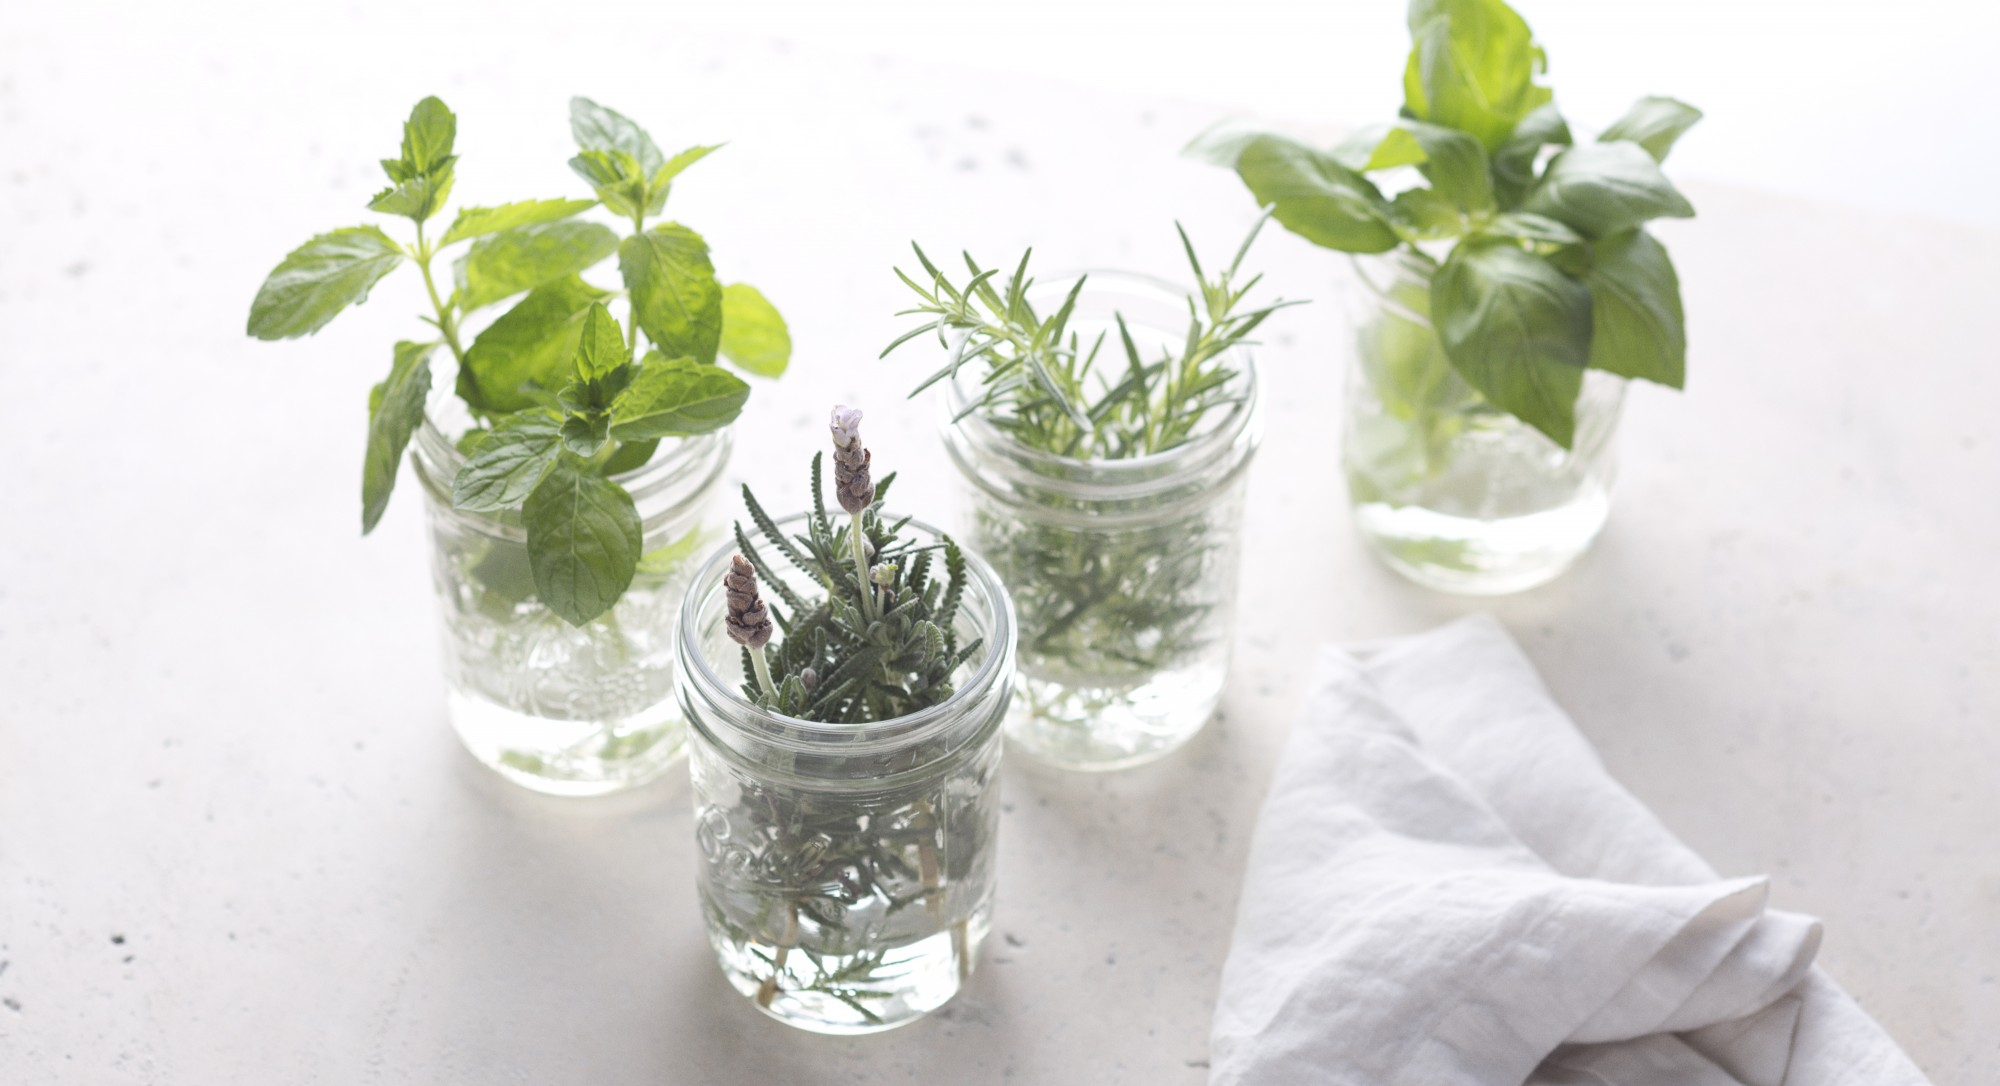 Tip of the Week: Store Fresh Herbs in Water